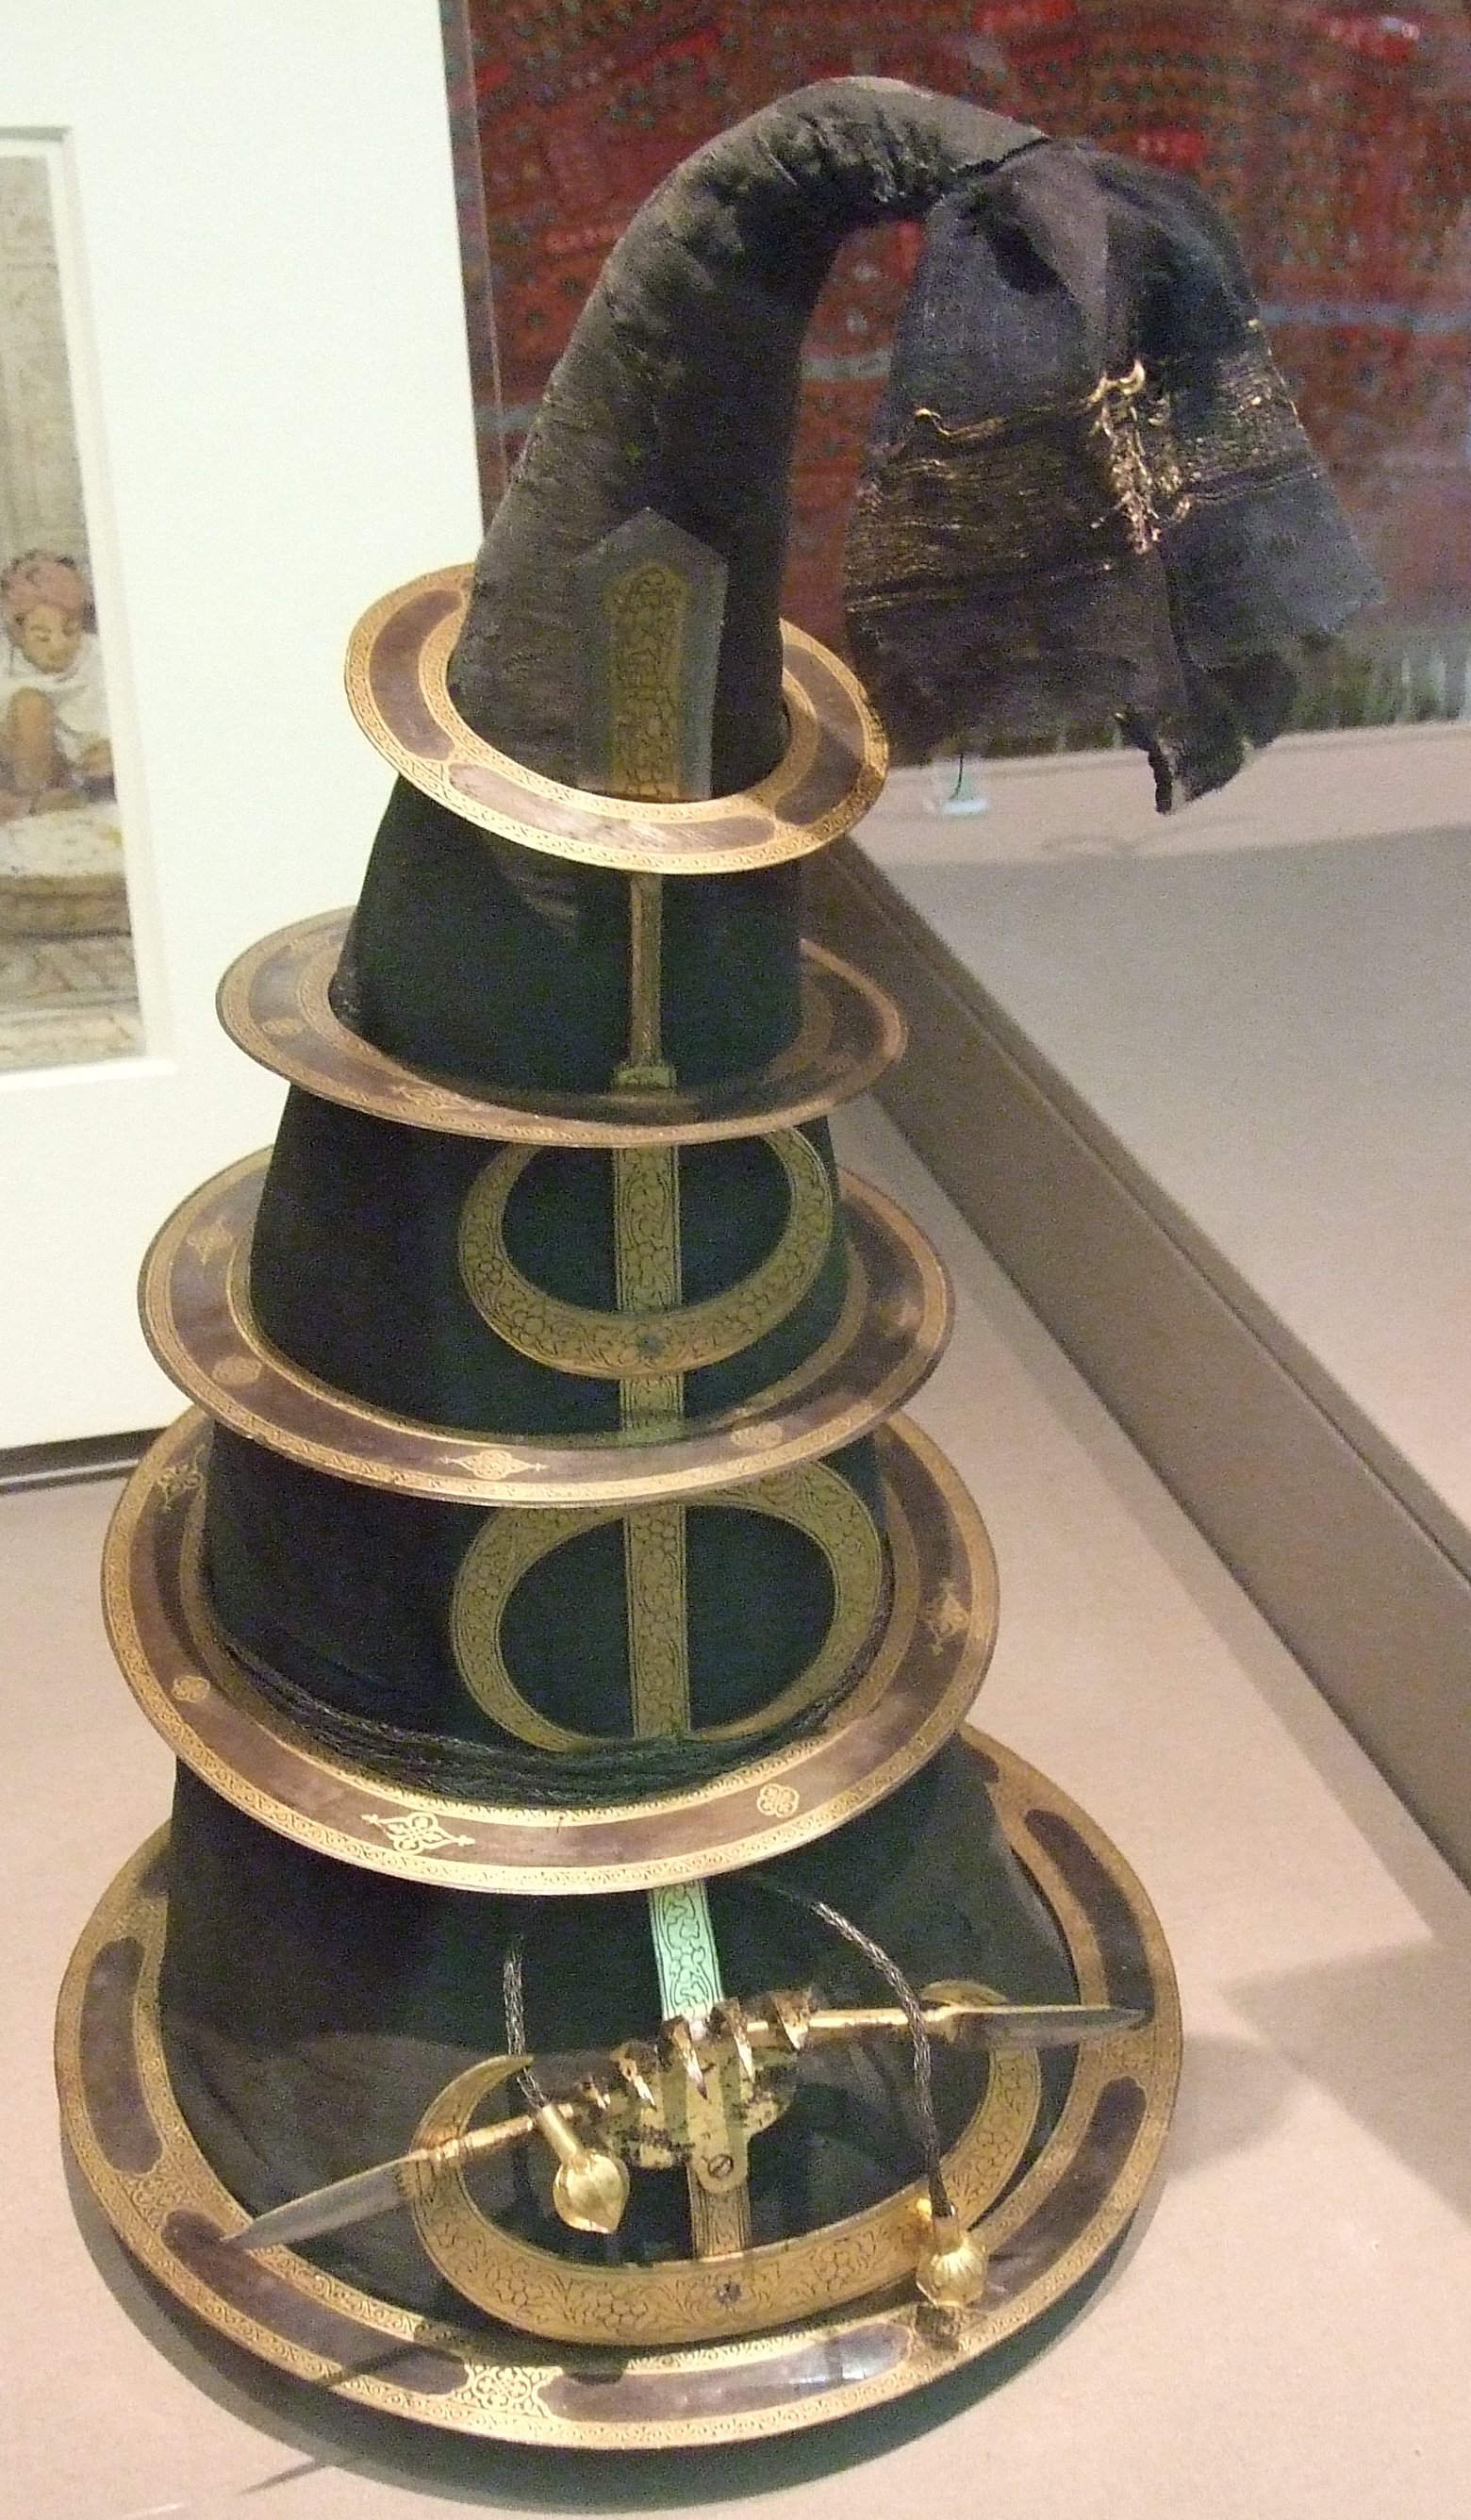 http://upload.wikimedia.org/wikipedia/commons/f/f7/Akali_Turban_with_quoits.JPG